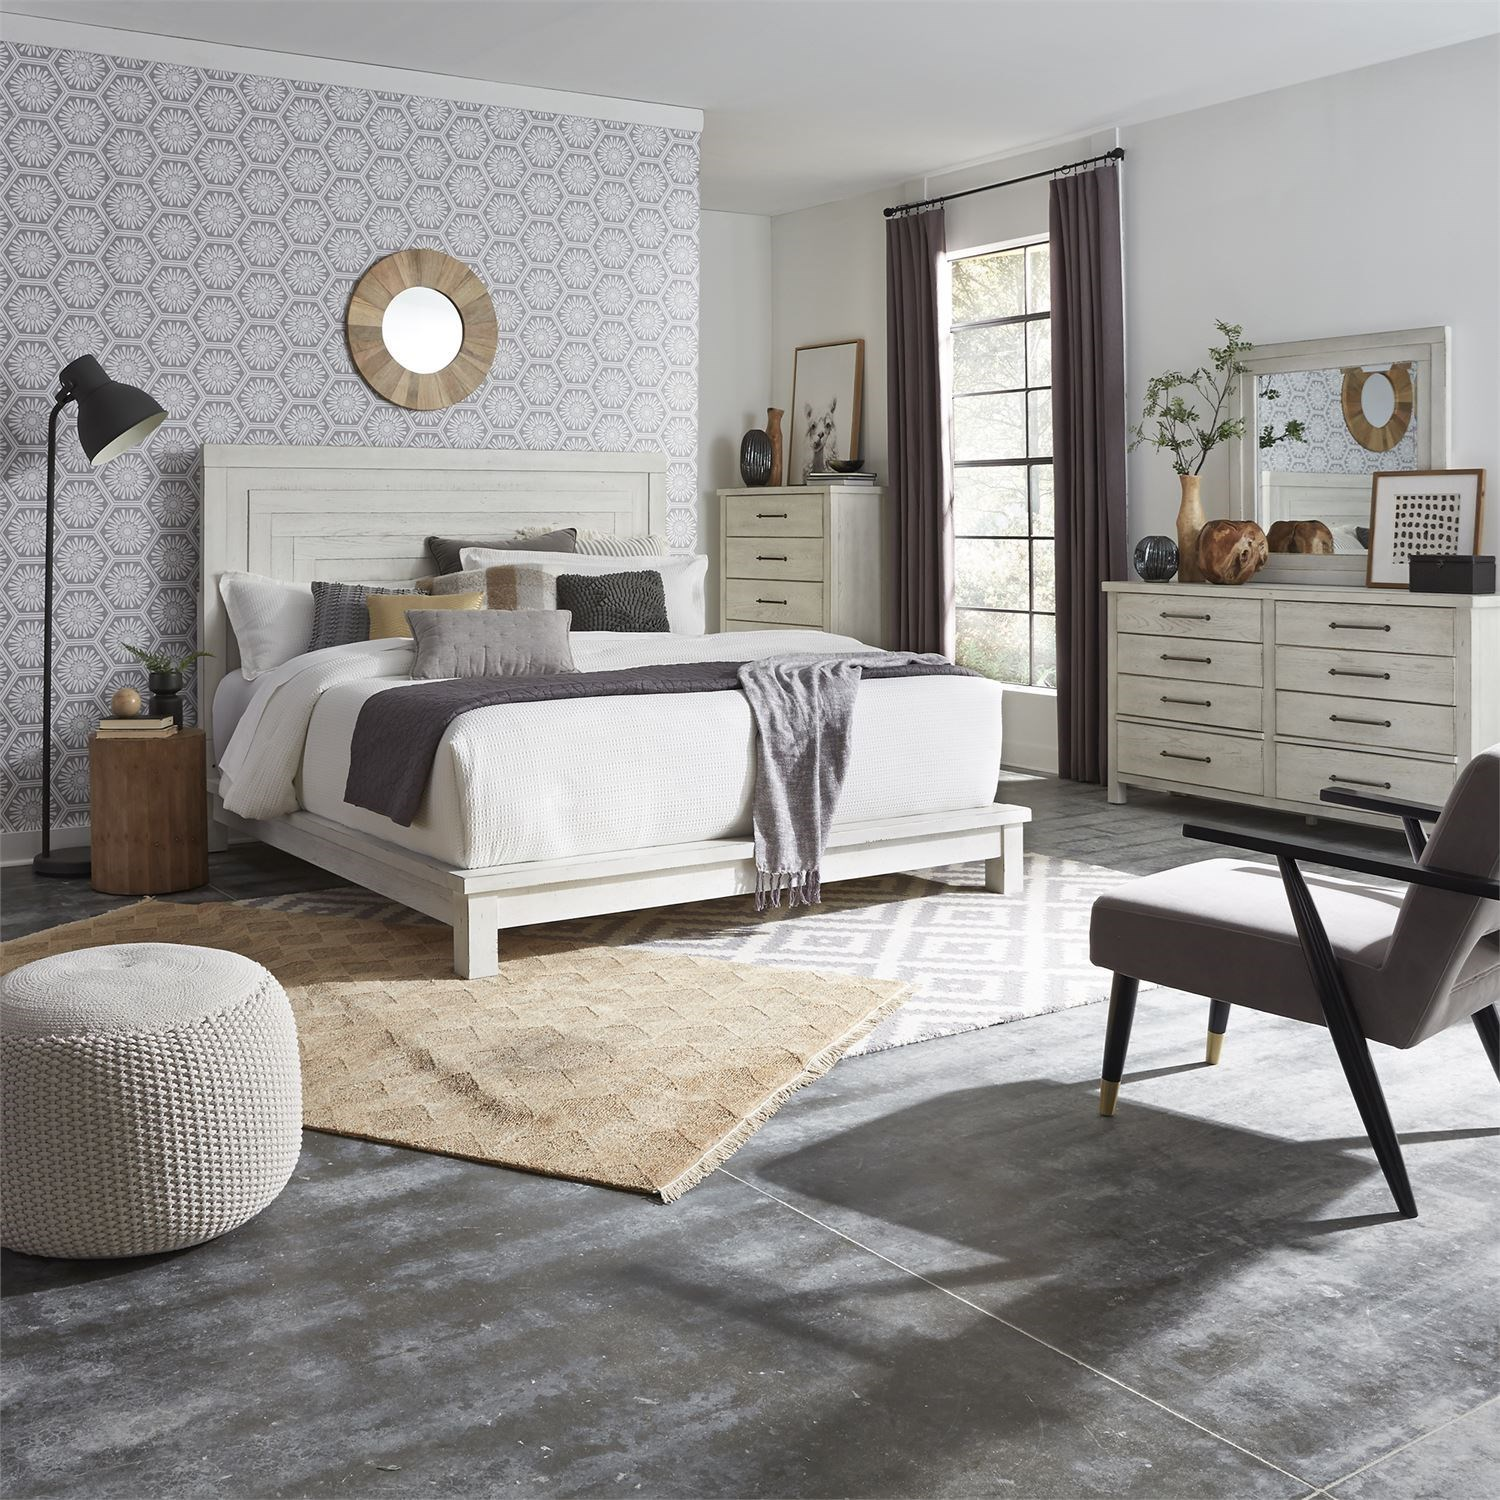 Modern Farmhouse Queen Bedroom Group by Libby at Walker's Furniture